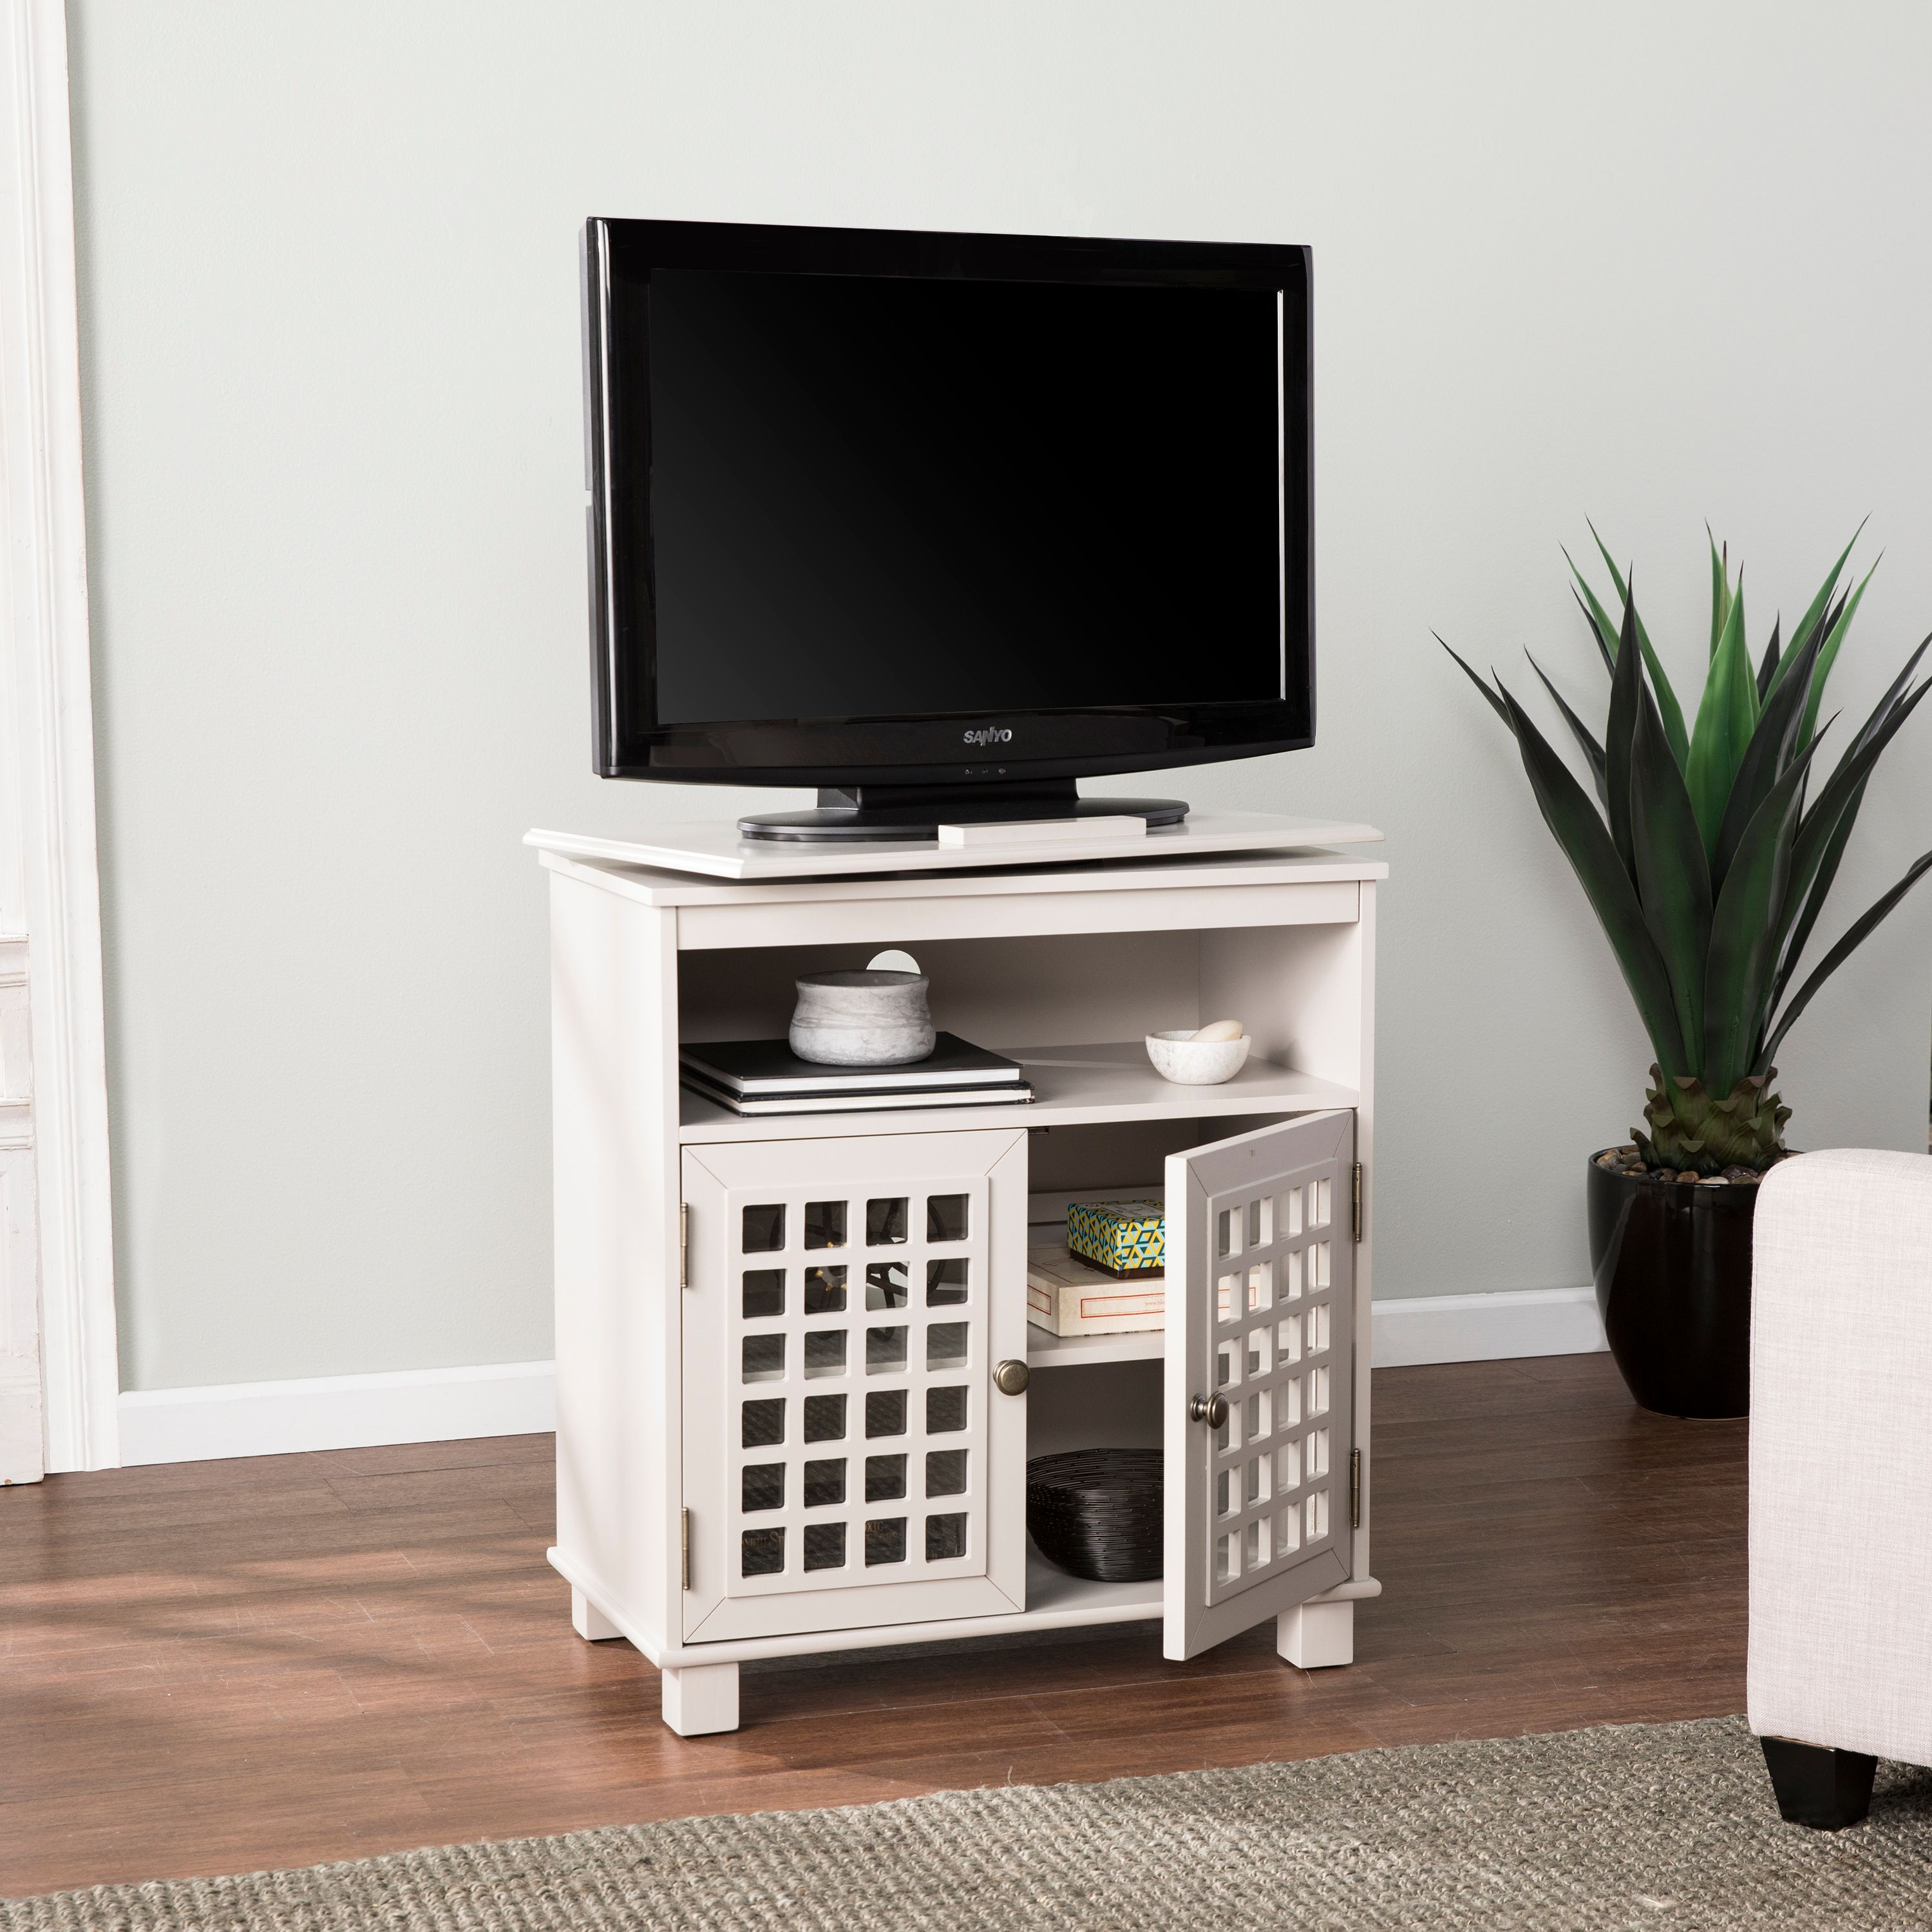 Southern Enterprises Melbourne Swivel Top Media Stand, Transitional Style, Gray